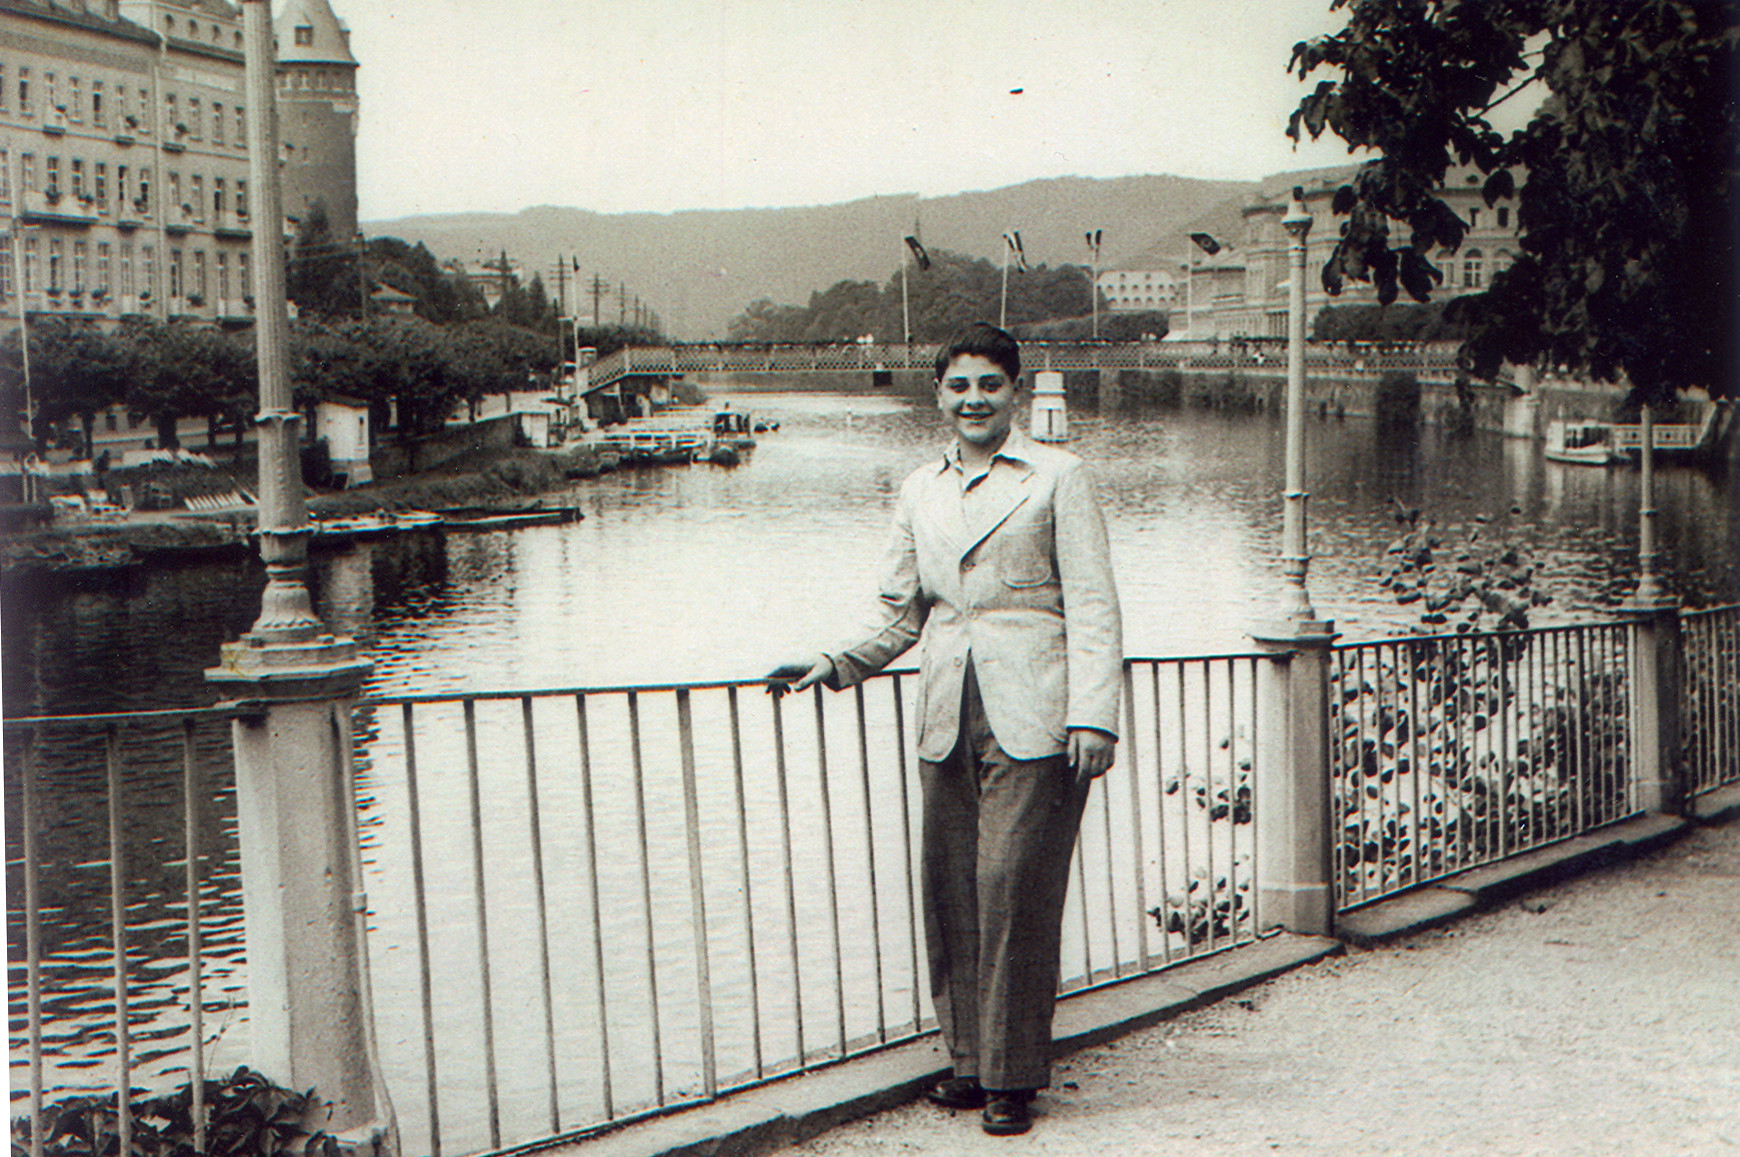 Fred Oppenheimer poses by the railing overlooking the Lahn River.